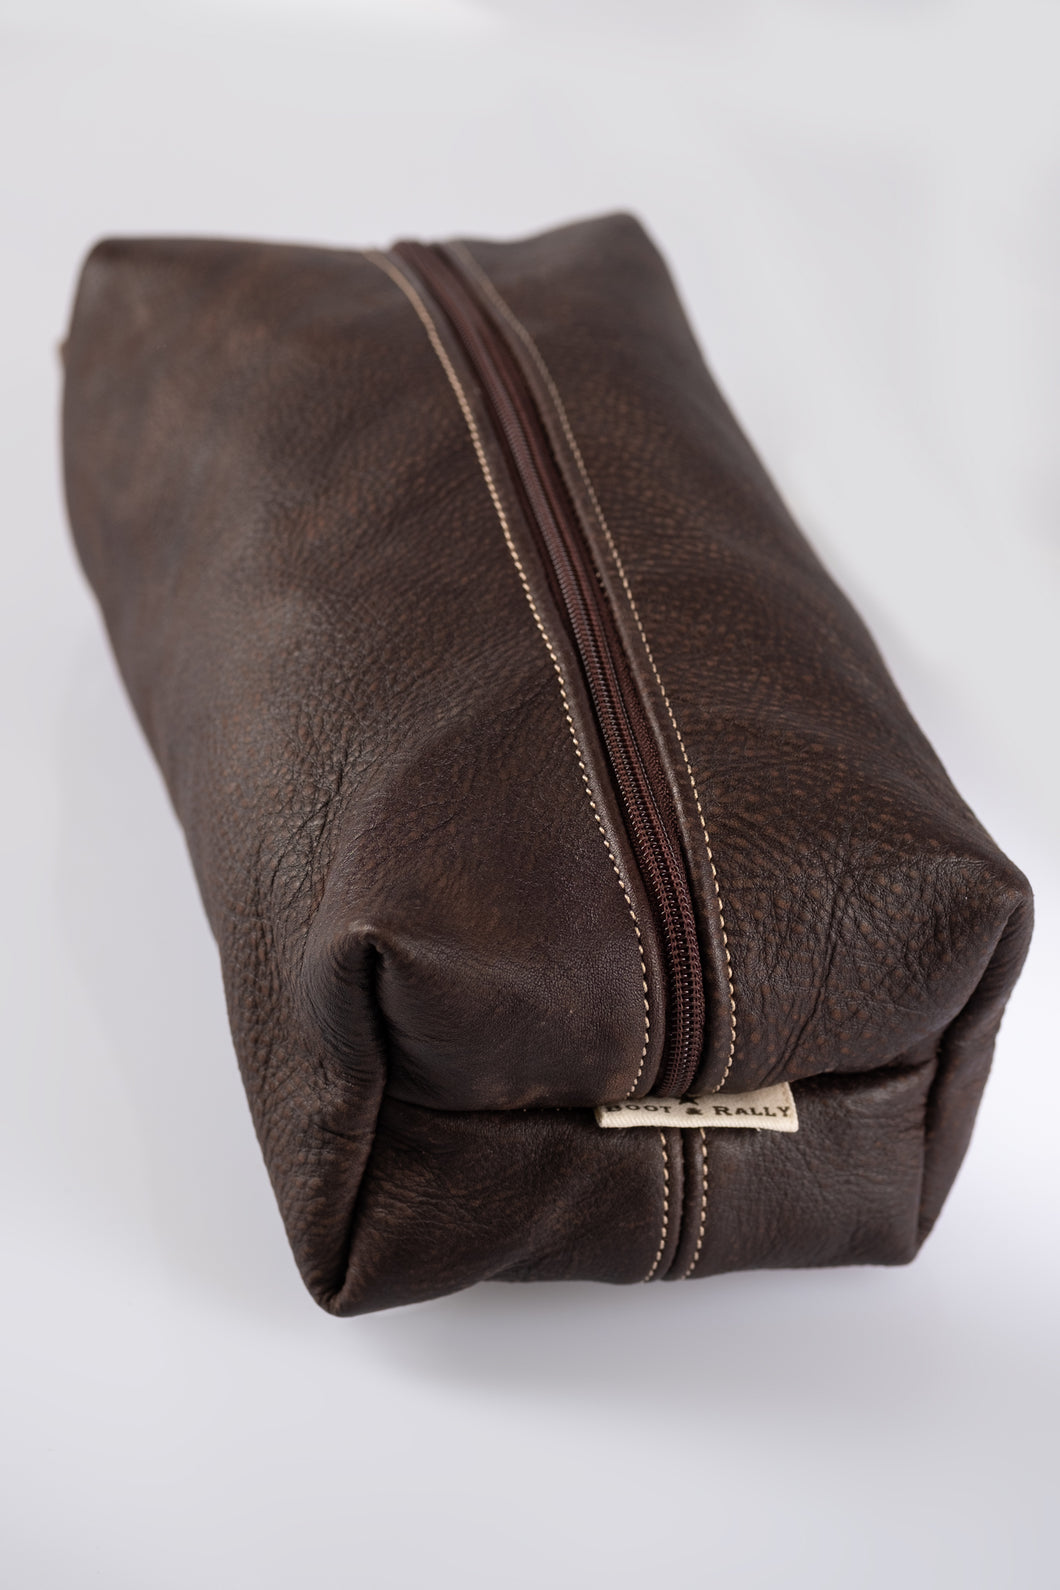 Toiletry bag- Full leather (Buffed Brown)